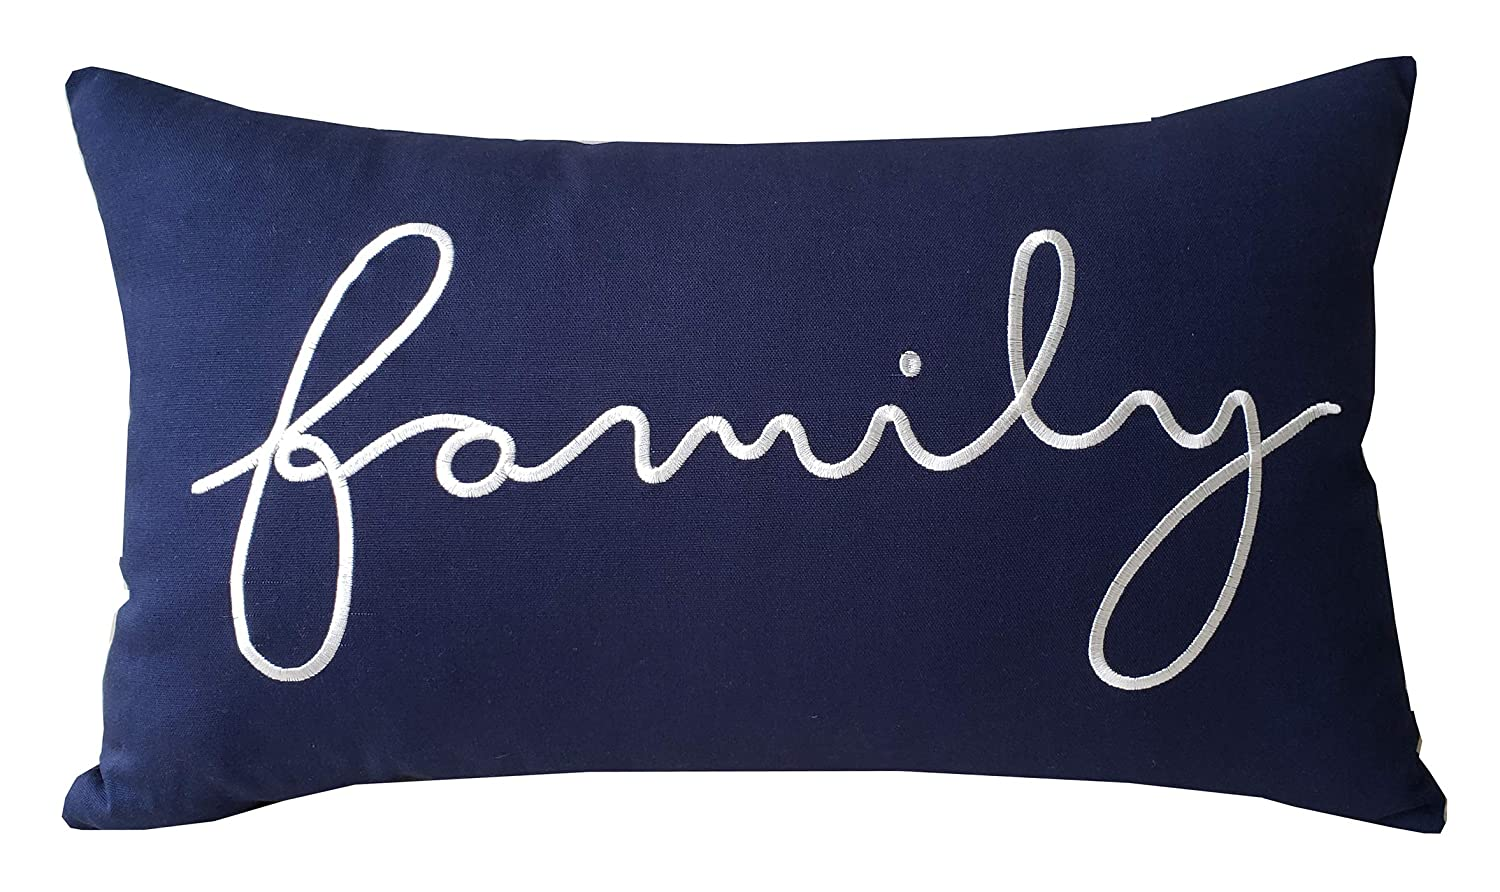 "EURASIA DECOR DecorHouzz Family Sentiment Pillow Covers Farmhouse Embroidered Throw Pillowcase for Housewarming Wedding Anniversary Couple Gift for Christmas He and She (14""X24"", Family(Navy))"